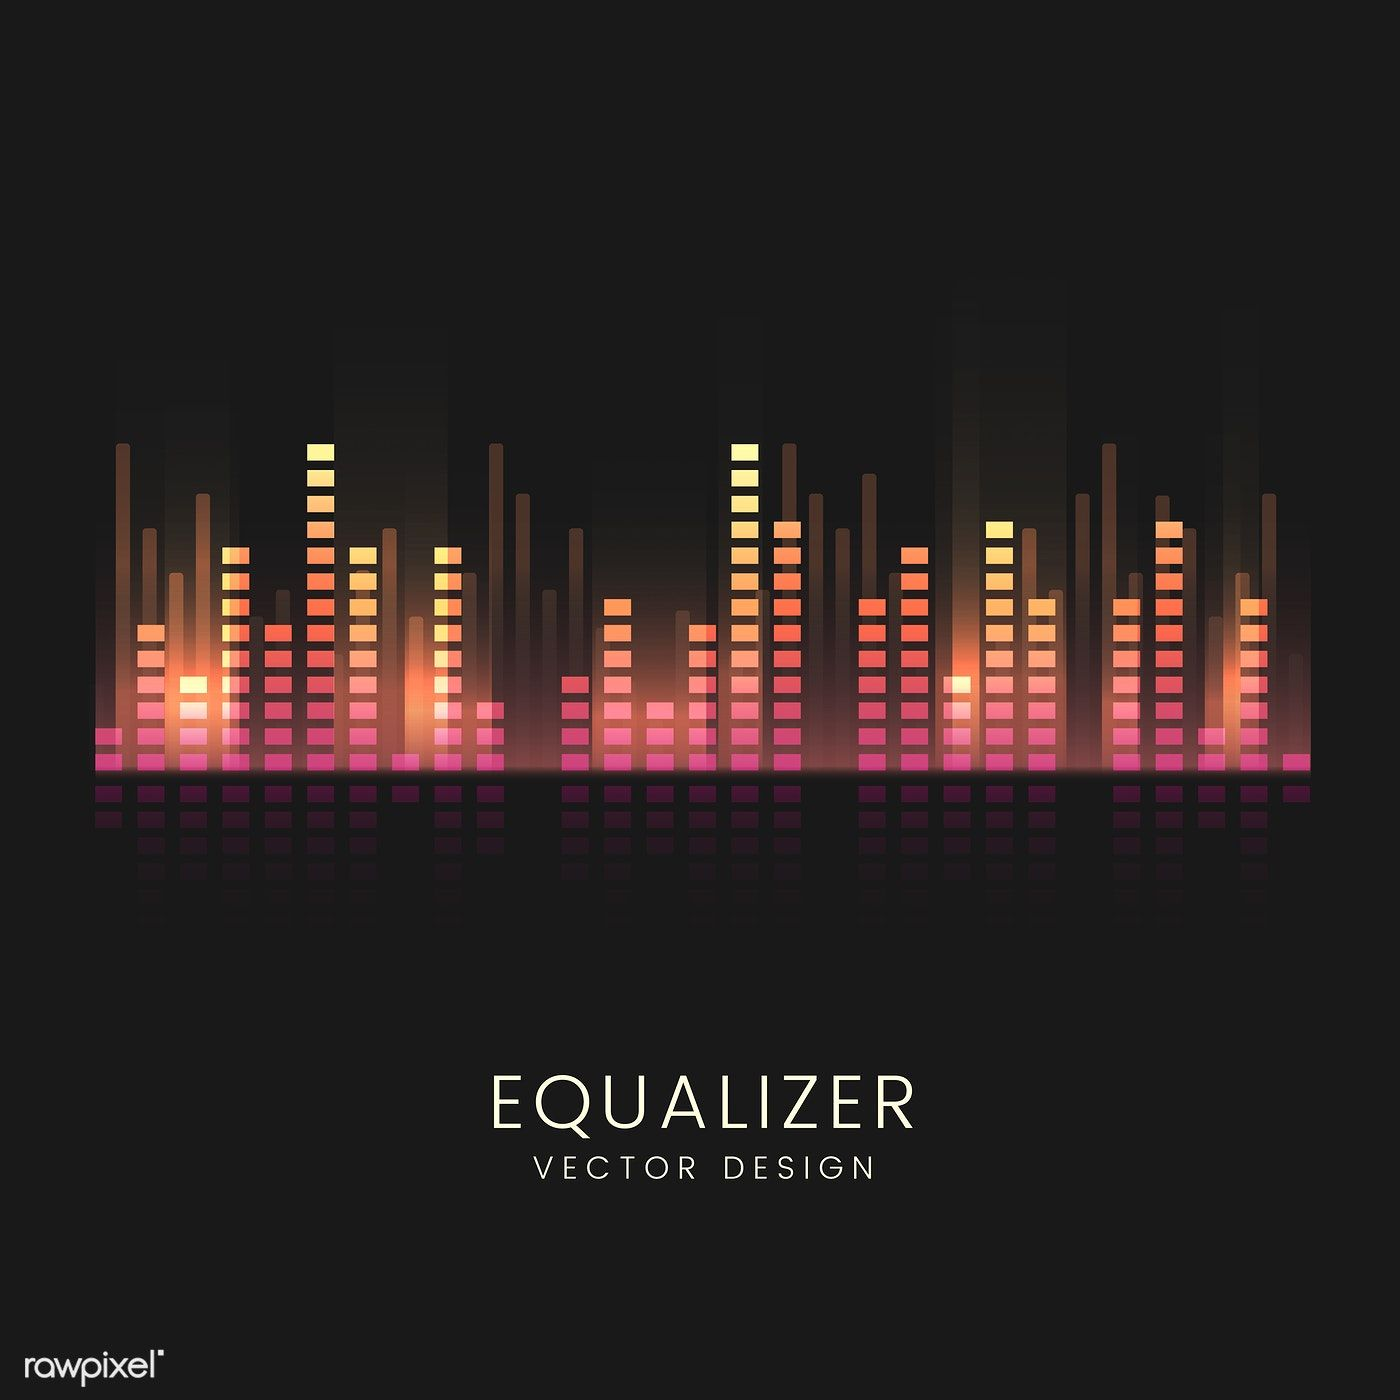 Colorful sound wave equalizer vector design | free image by rawpixel